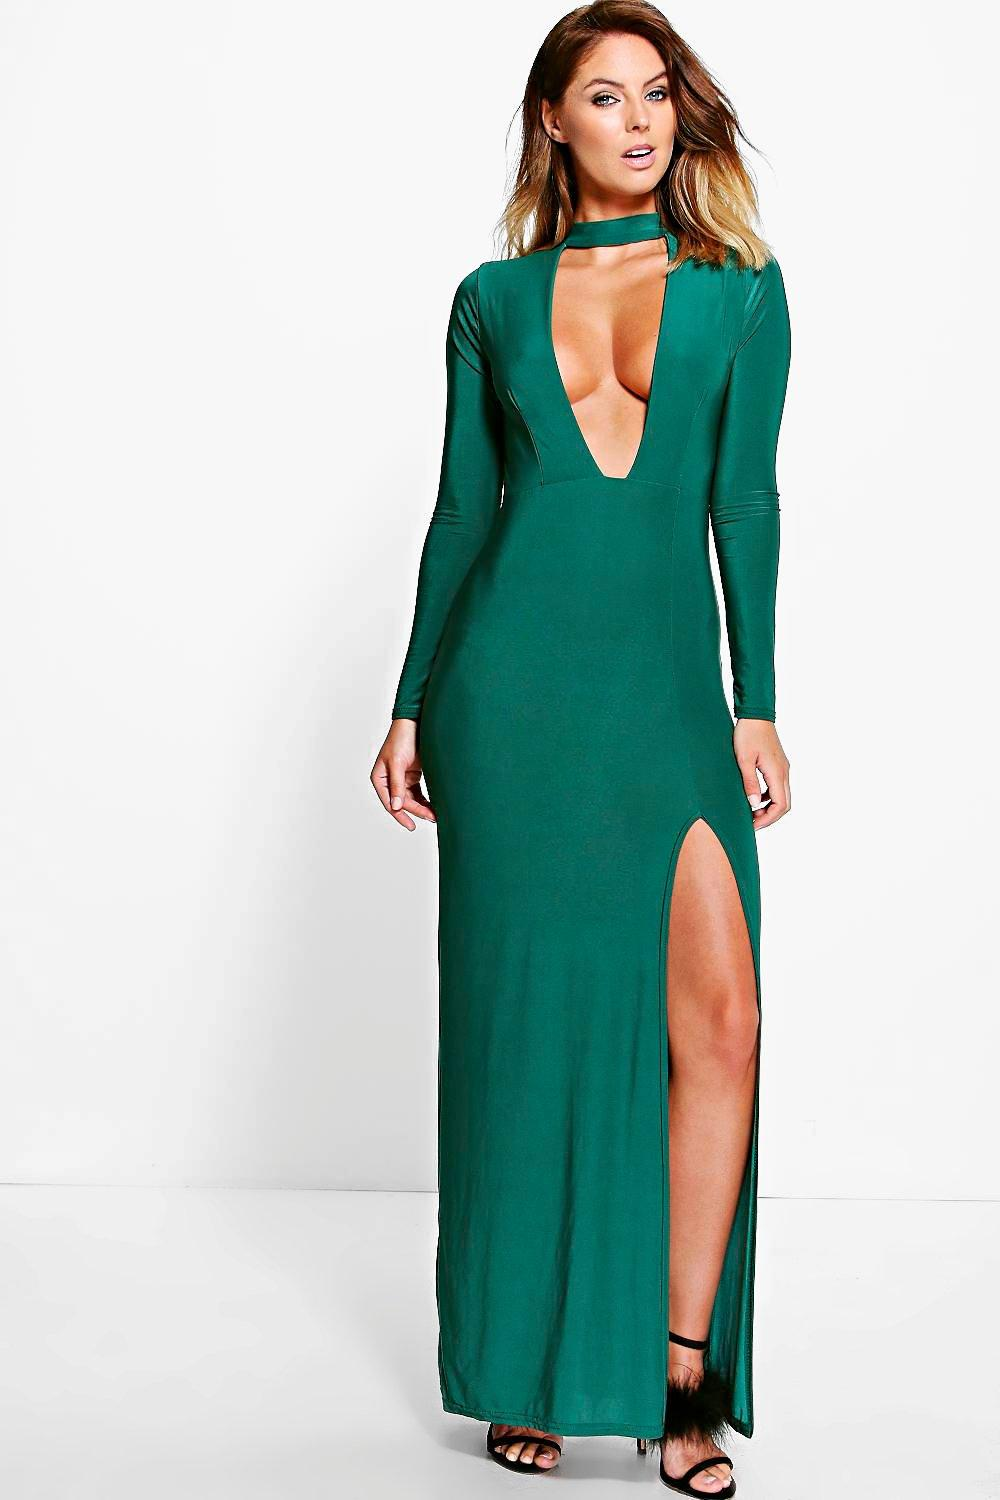 Rezy Choker Long Sleeved Slinky Maxi Dress